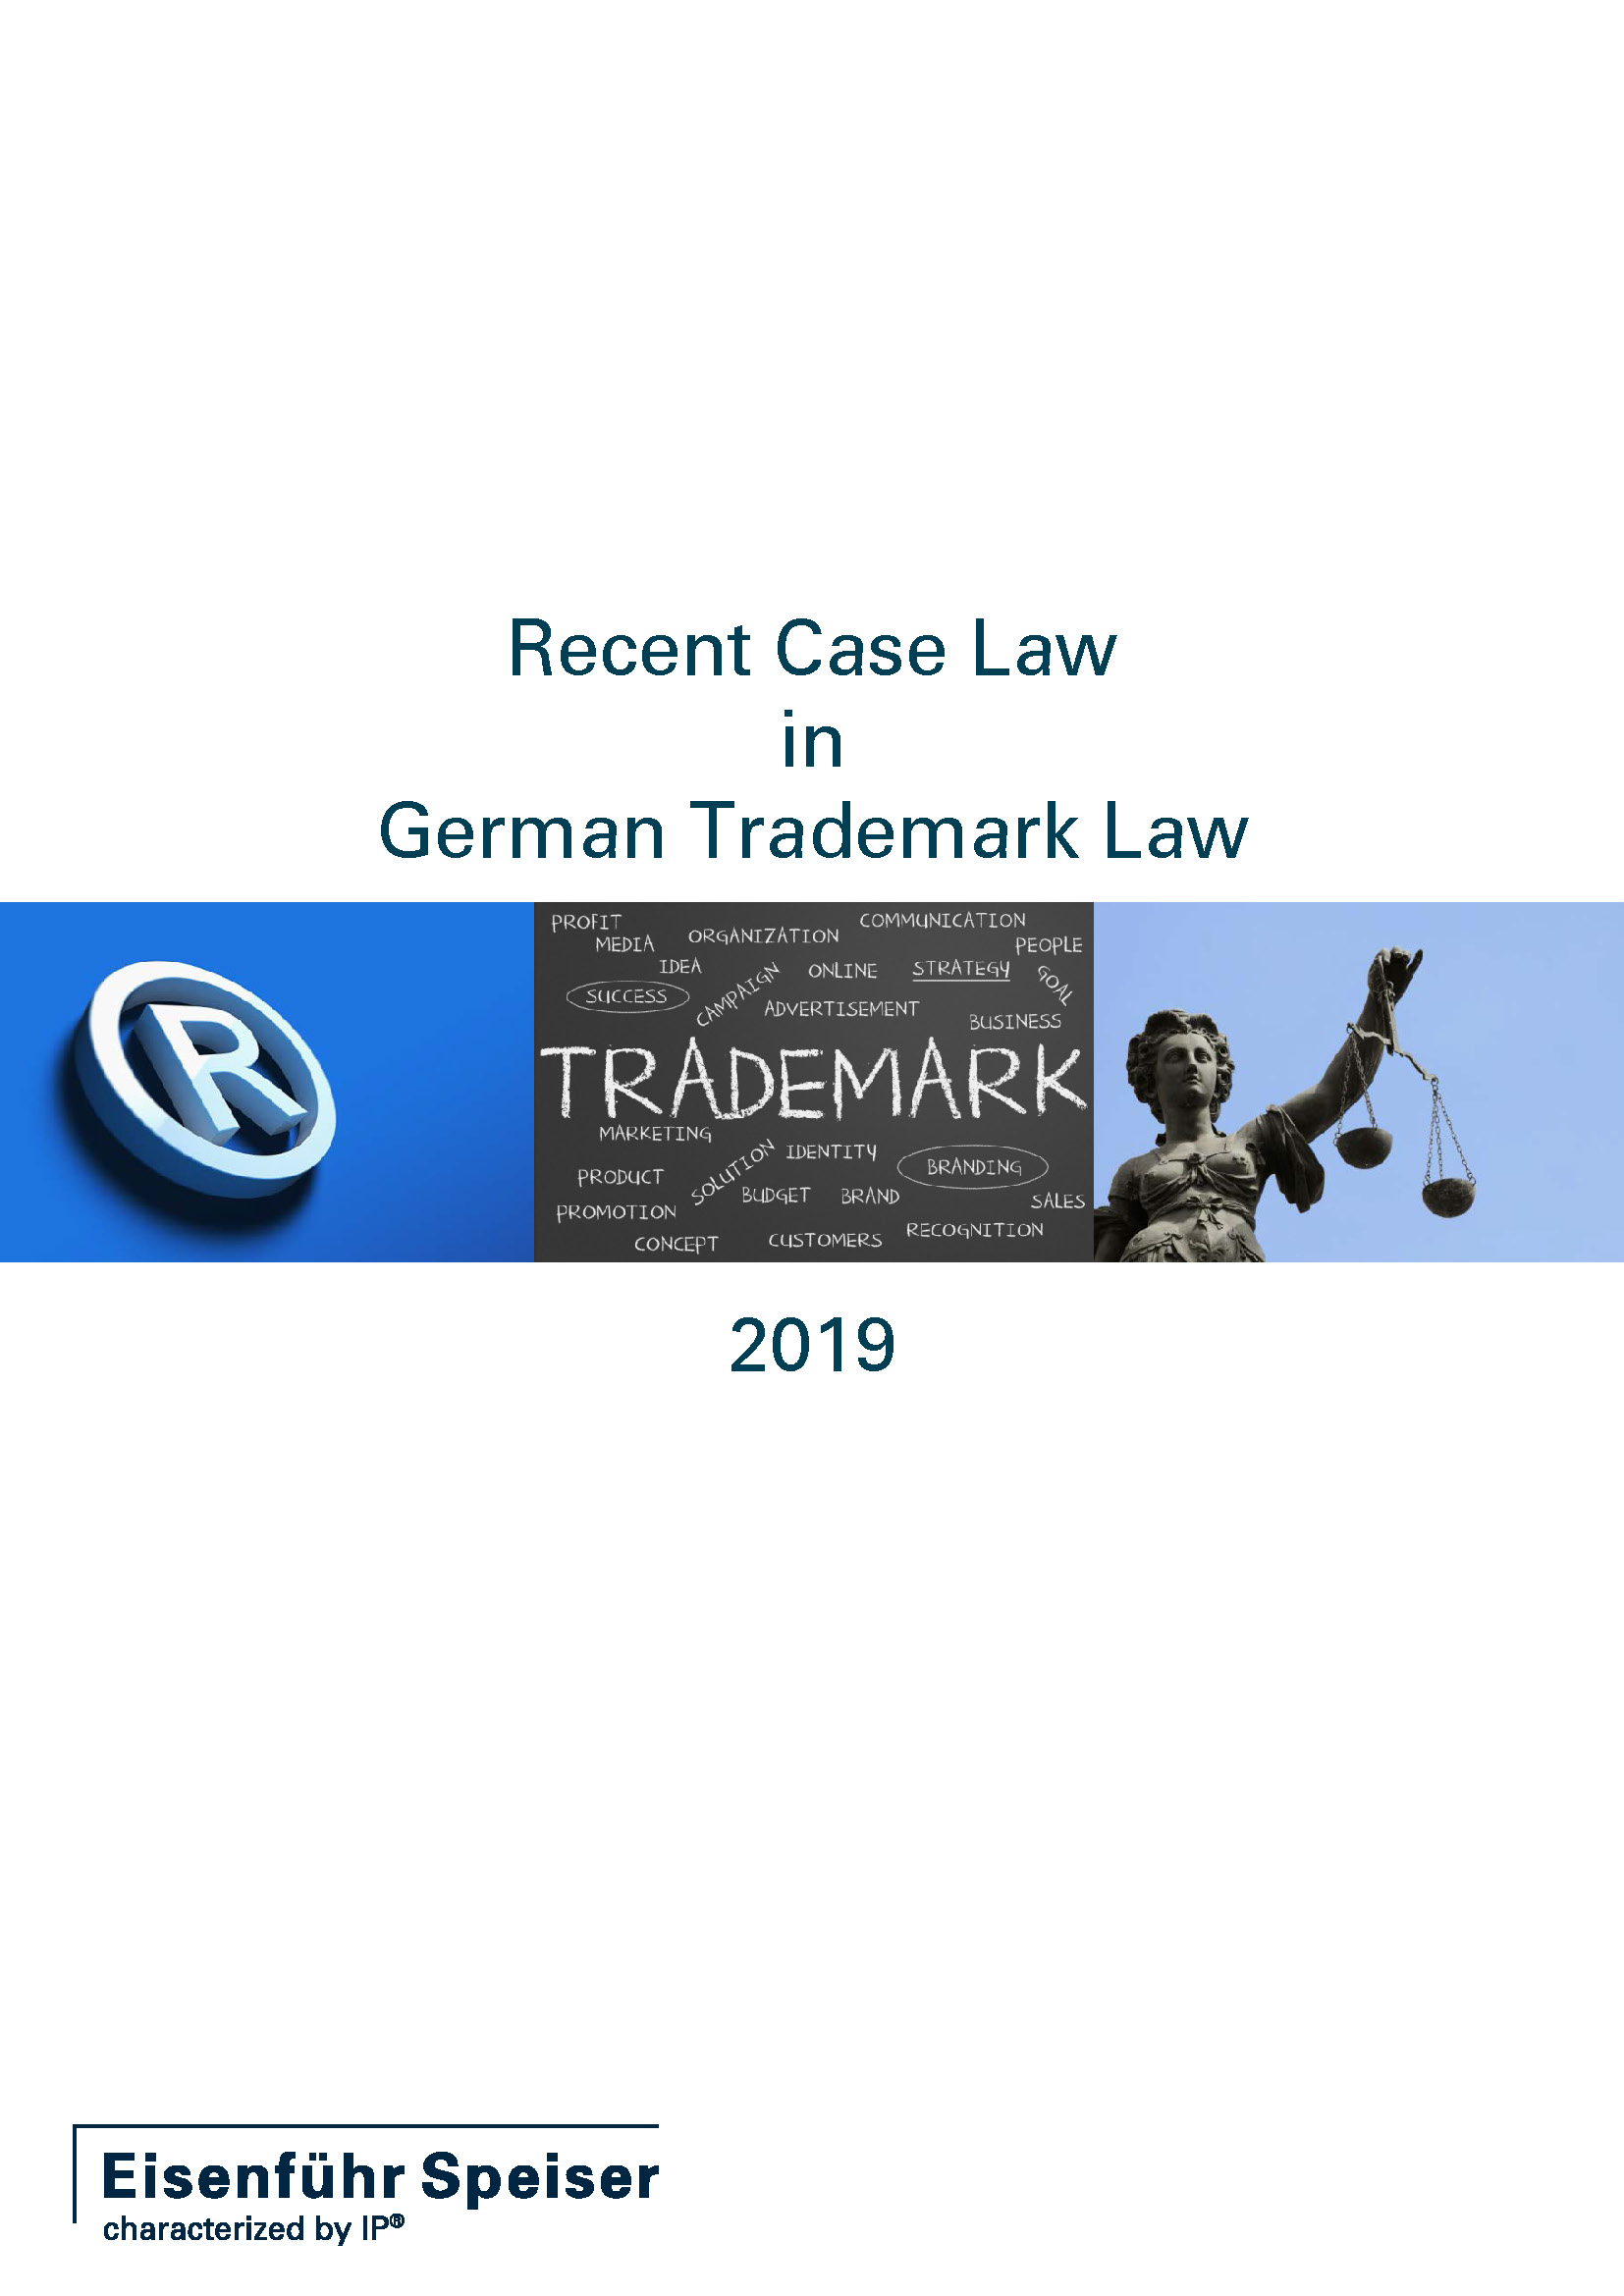 Recent Case Law in German Trademark Law 2019